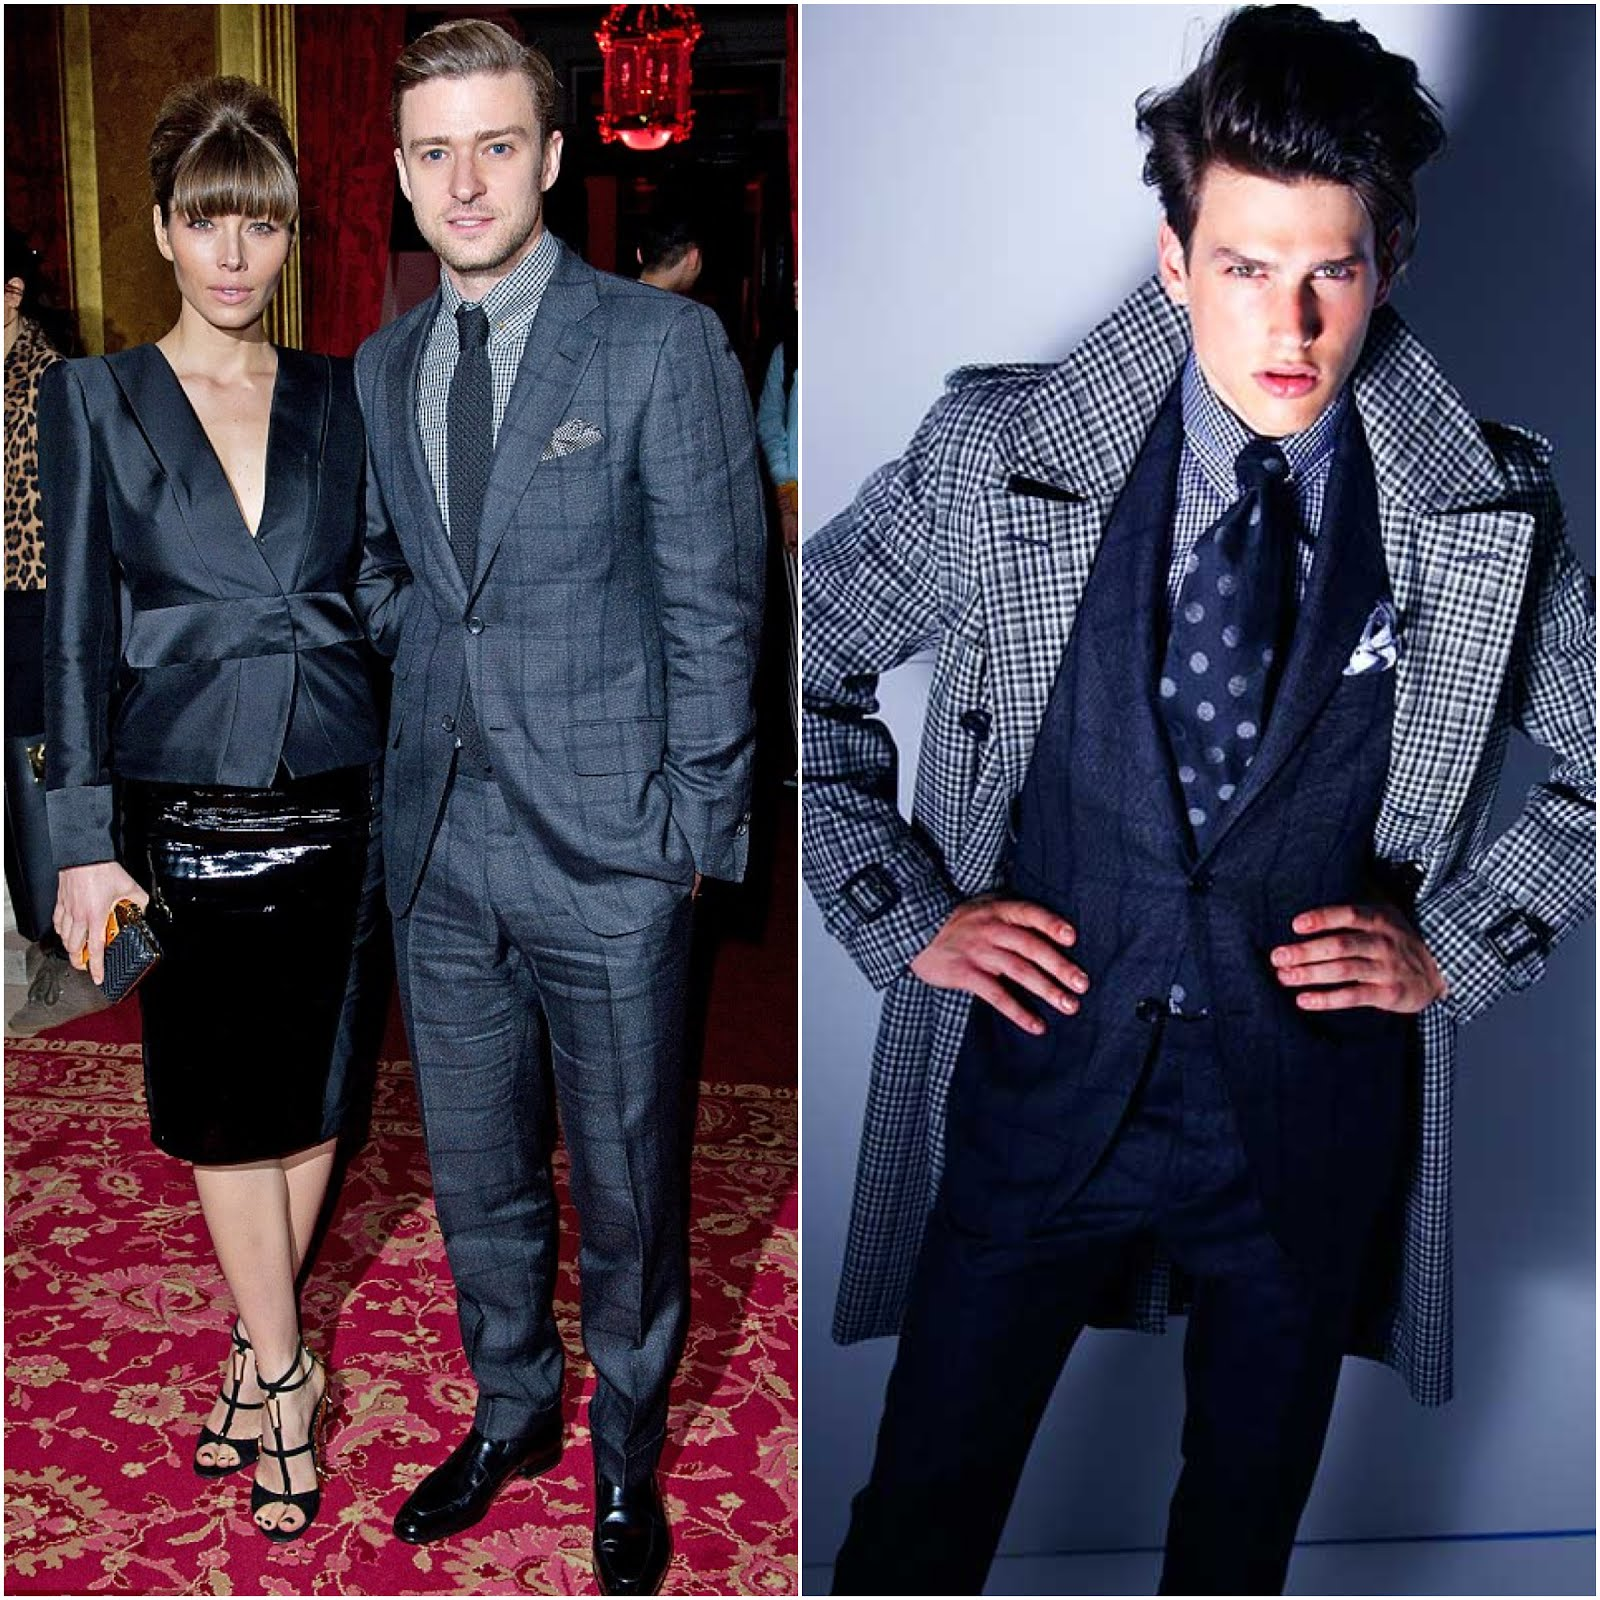 00O00 Menswear Blog Justin Timberlake and Jessica Biel in Tom Ford at Tom Ford Fall Winter 2013, London Fashion Week